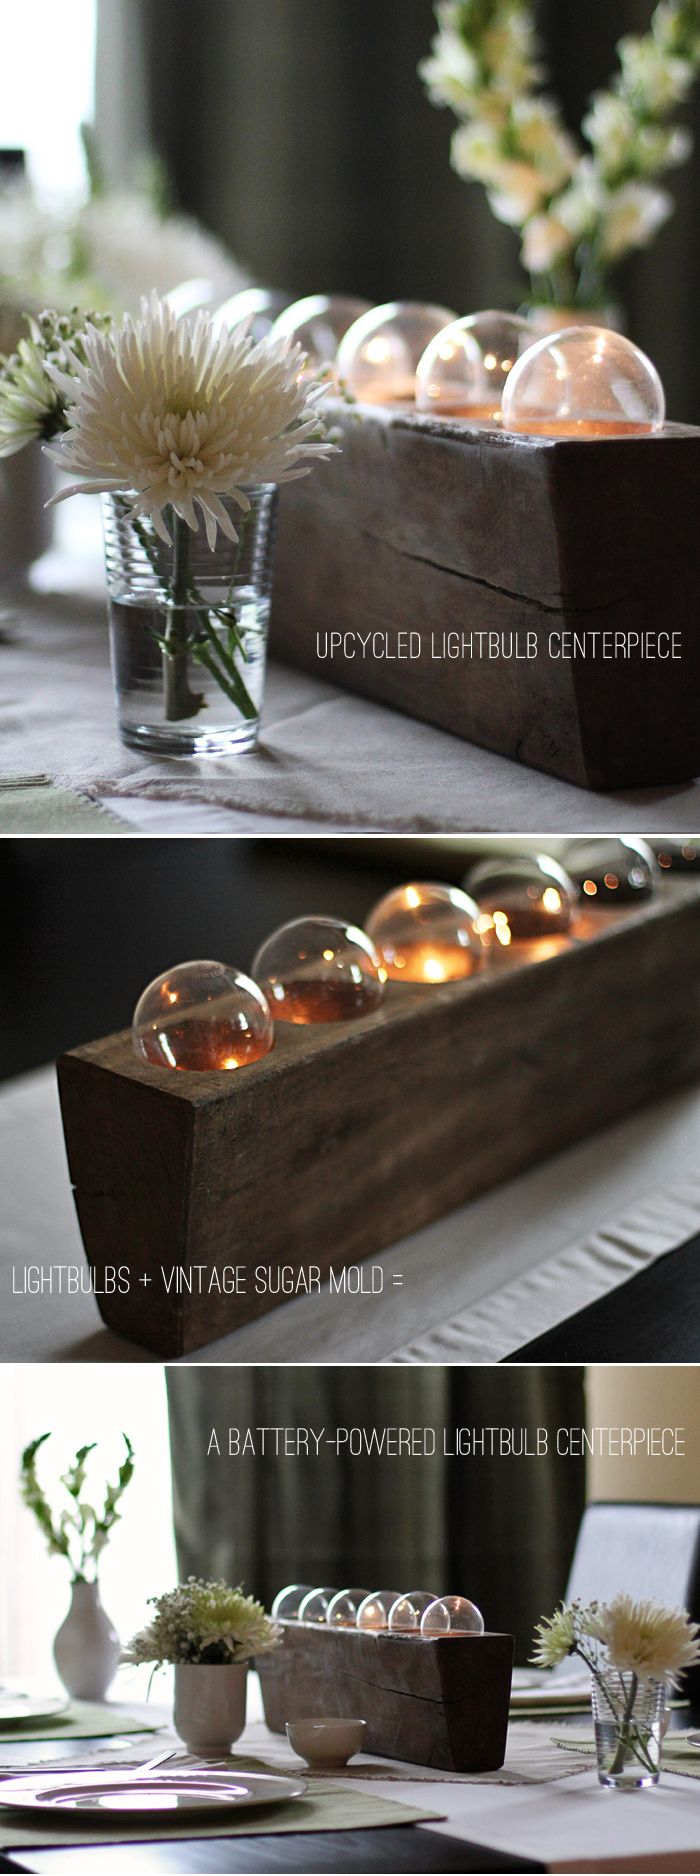 Upcycled Lightbulb Centerpiece | Julee from Warm Hot Chocolate | Buzzfeed | #diy #lights #centerpieces